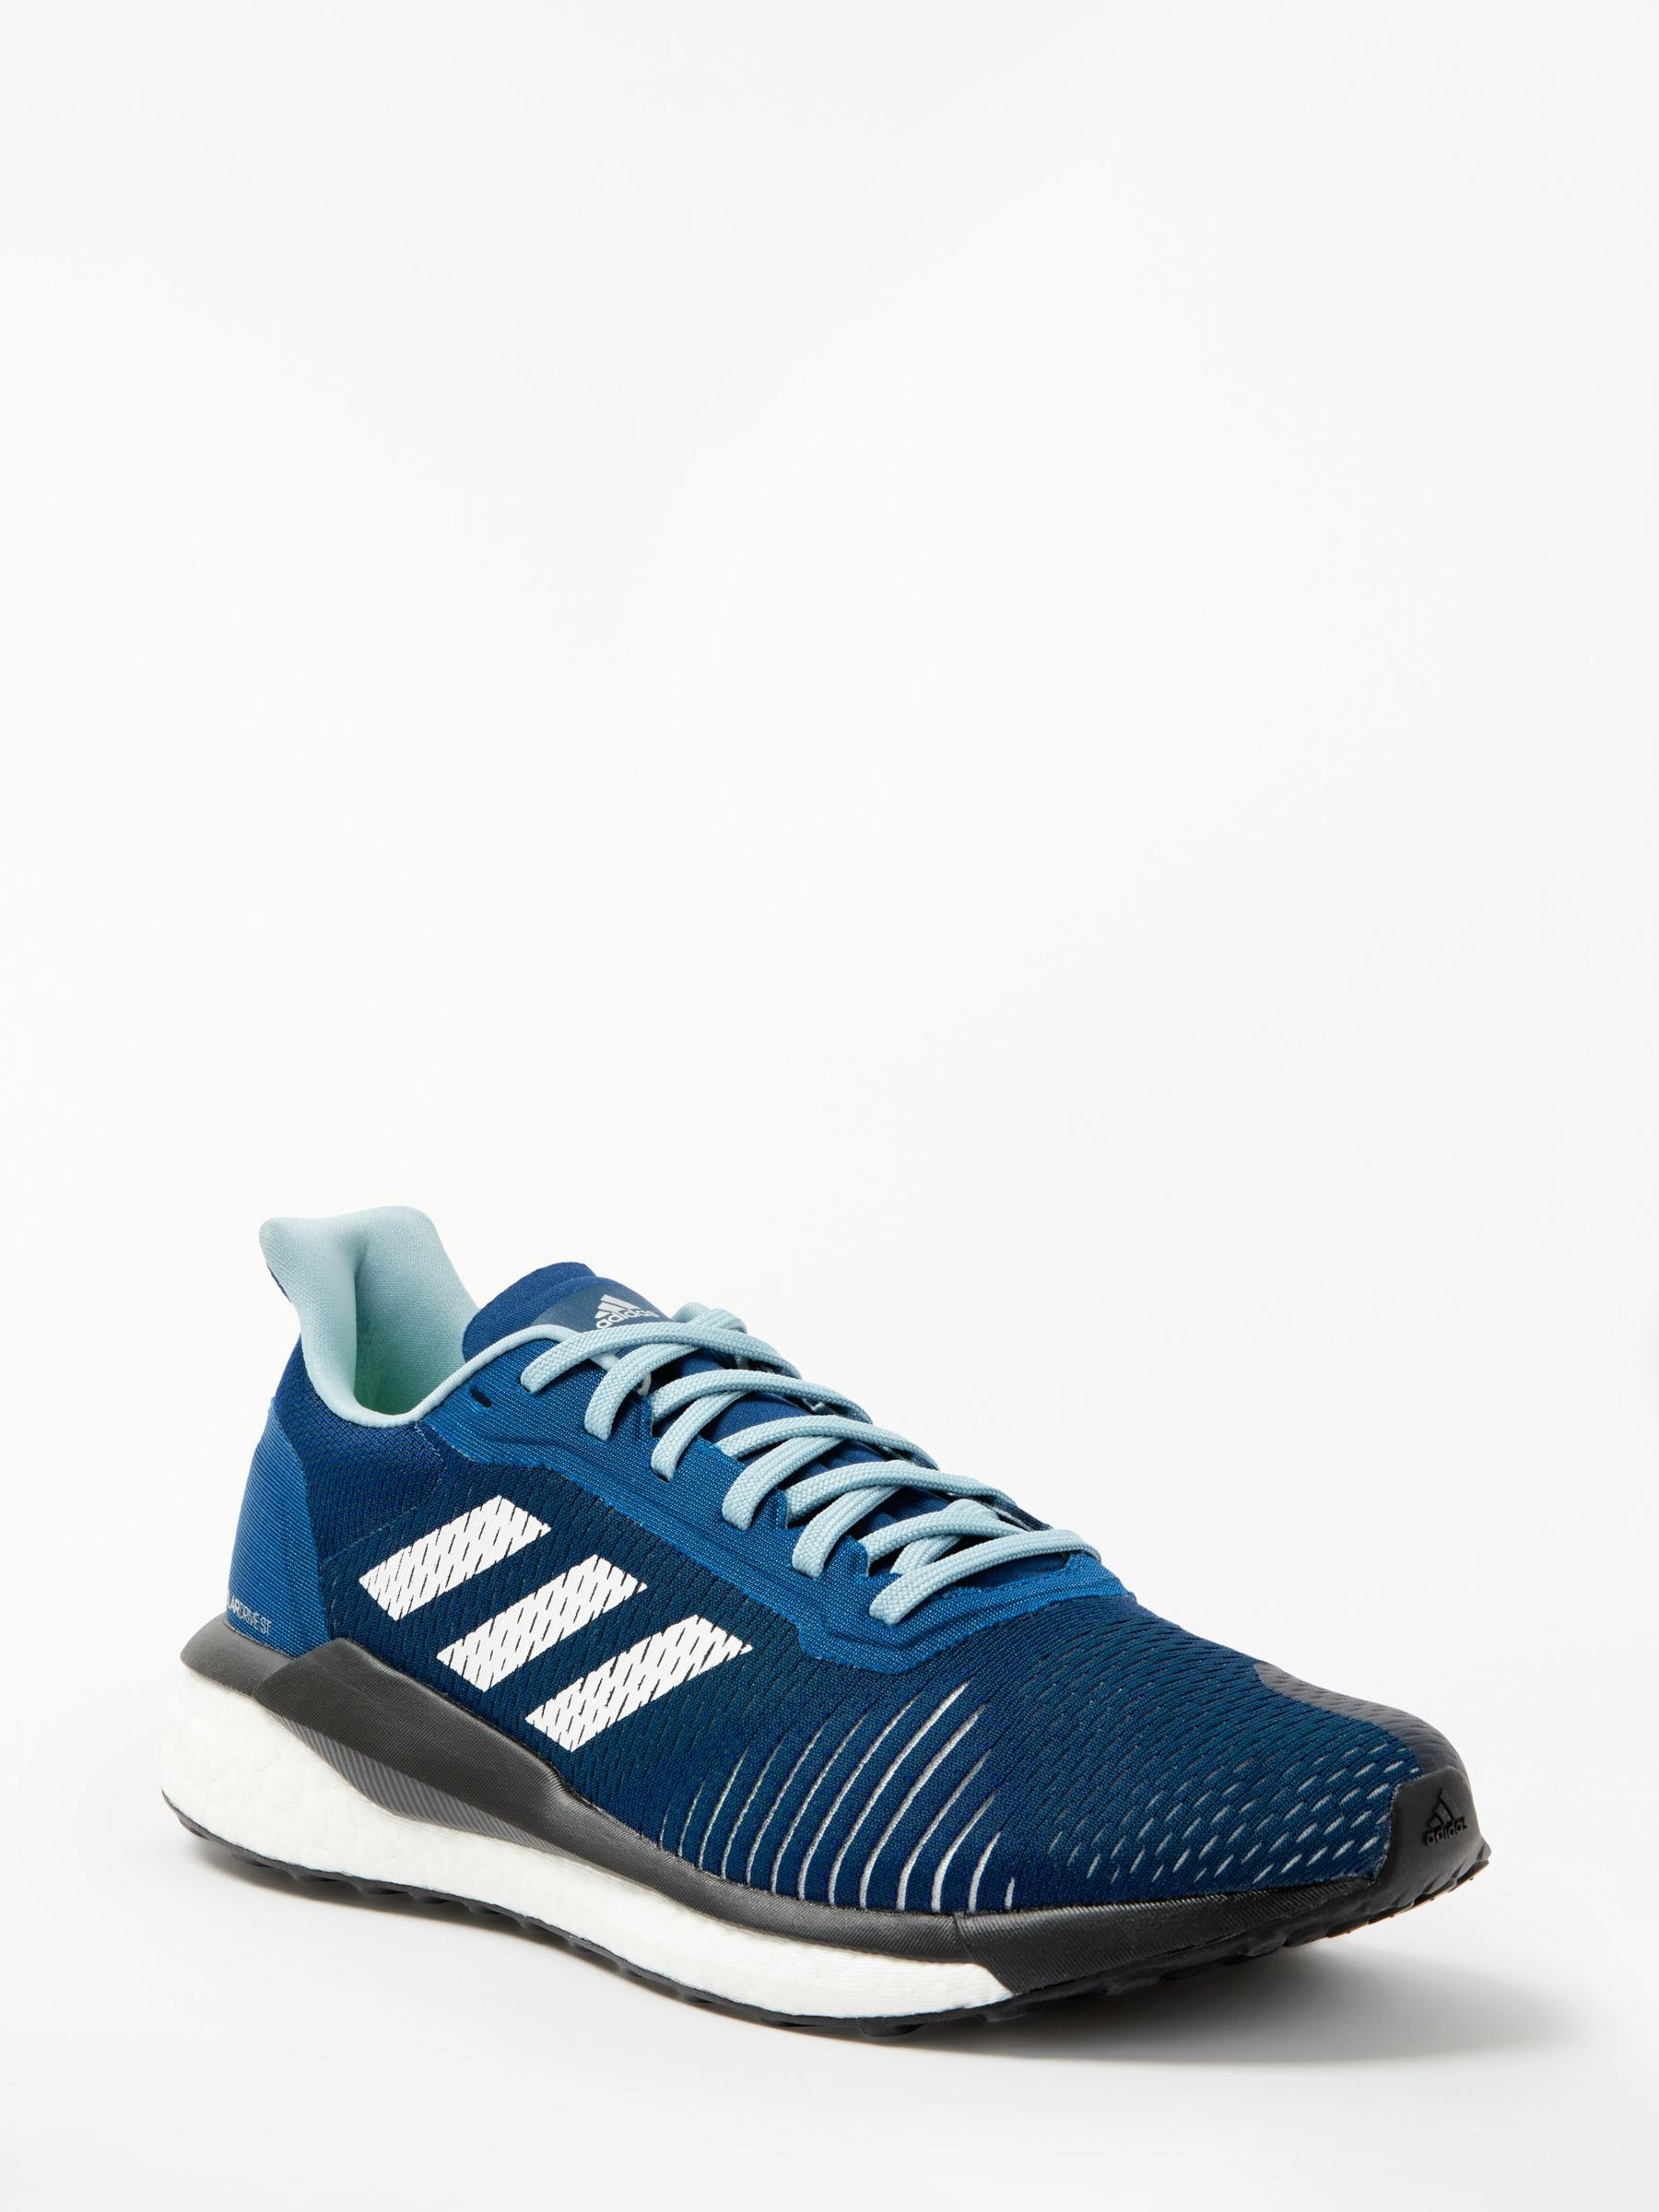 e83ab1605bc adidas Solar Drive St Men s Running Shoes in Blue for Men - Lyst